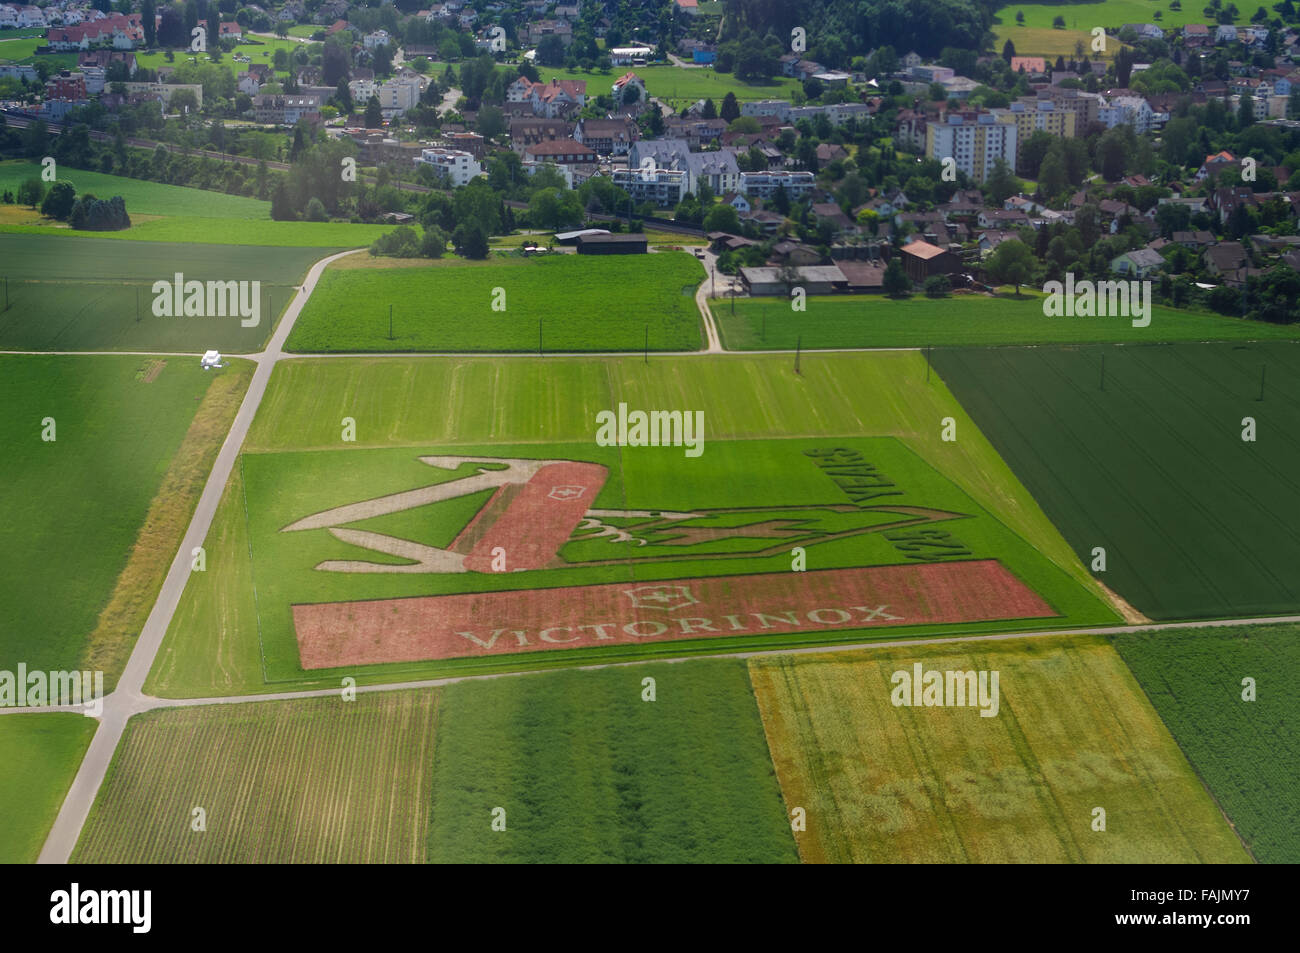 Aerial image of a super-size Victorinox Swiss army knife advertisement in a crop field. - Stock Image